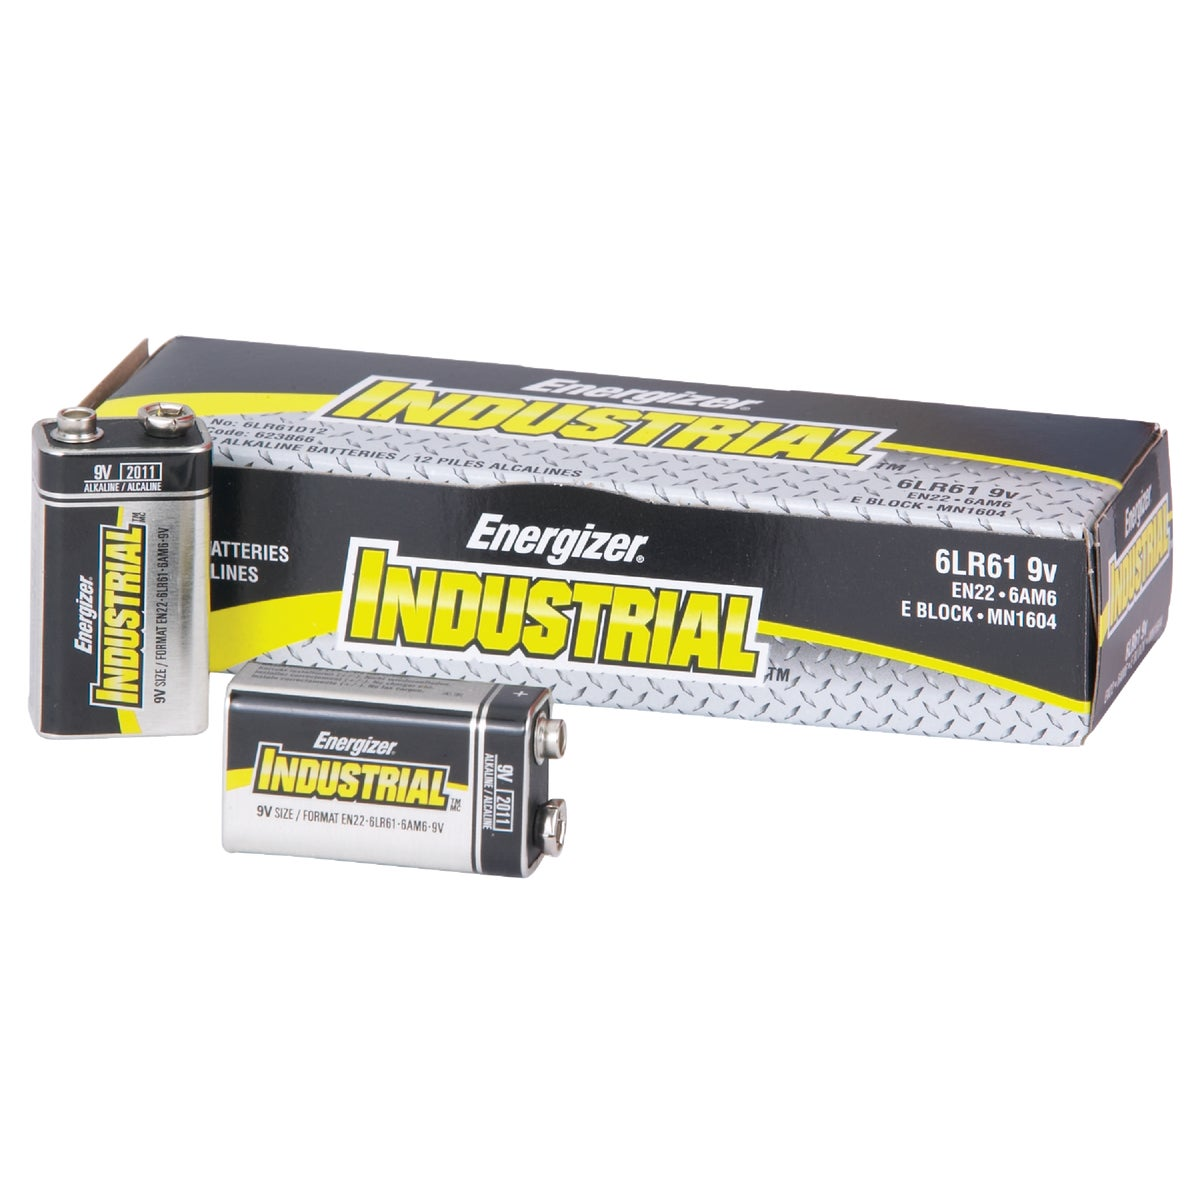 9V INDUSTRIAL BATTERY - EN22 by Energizer  Incom